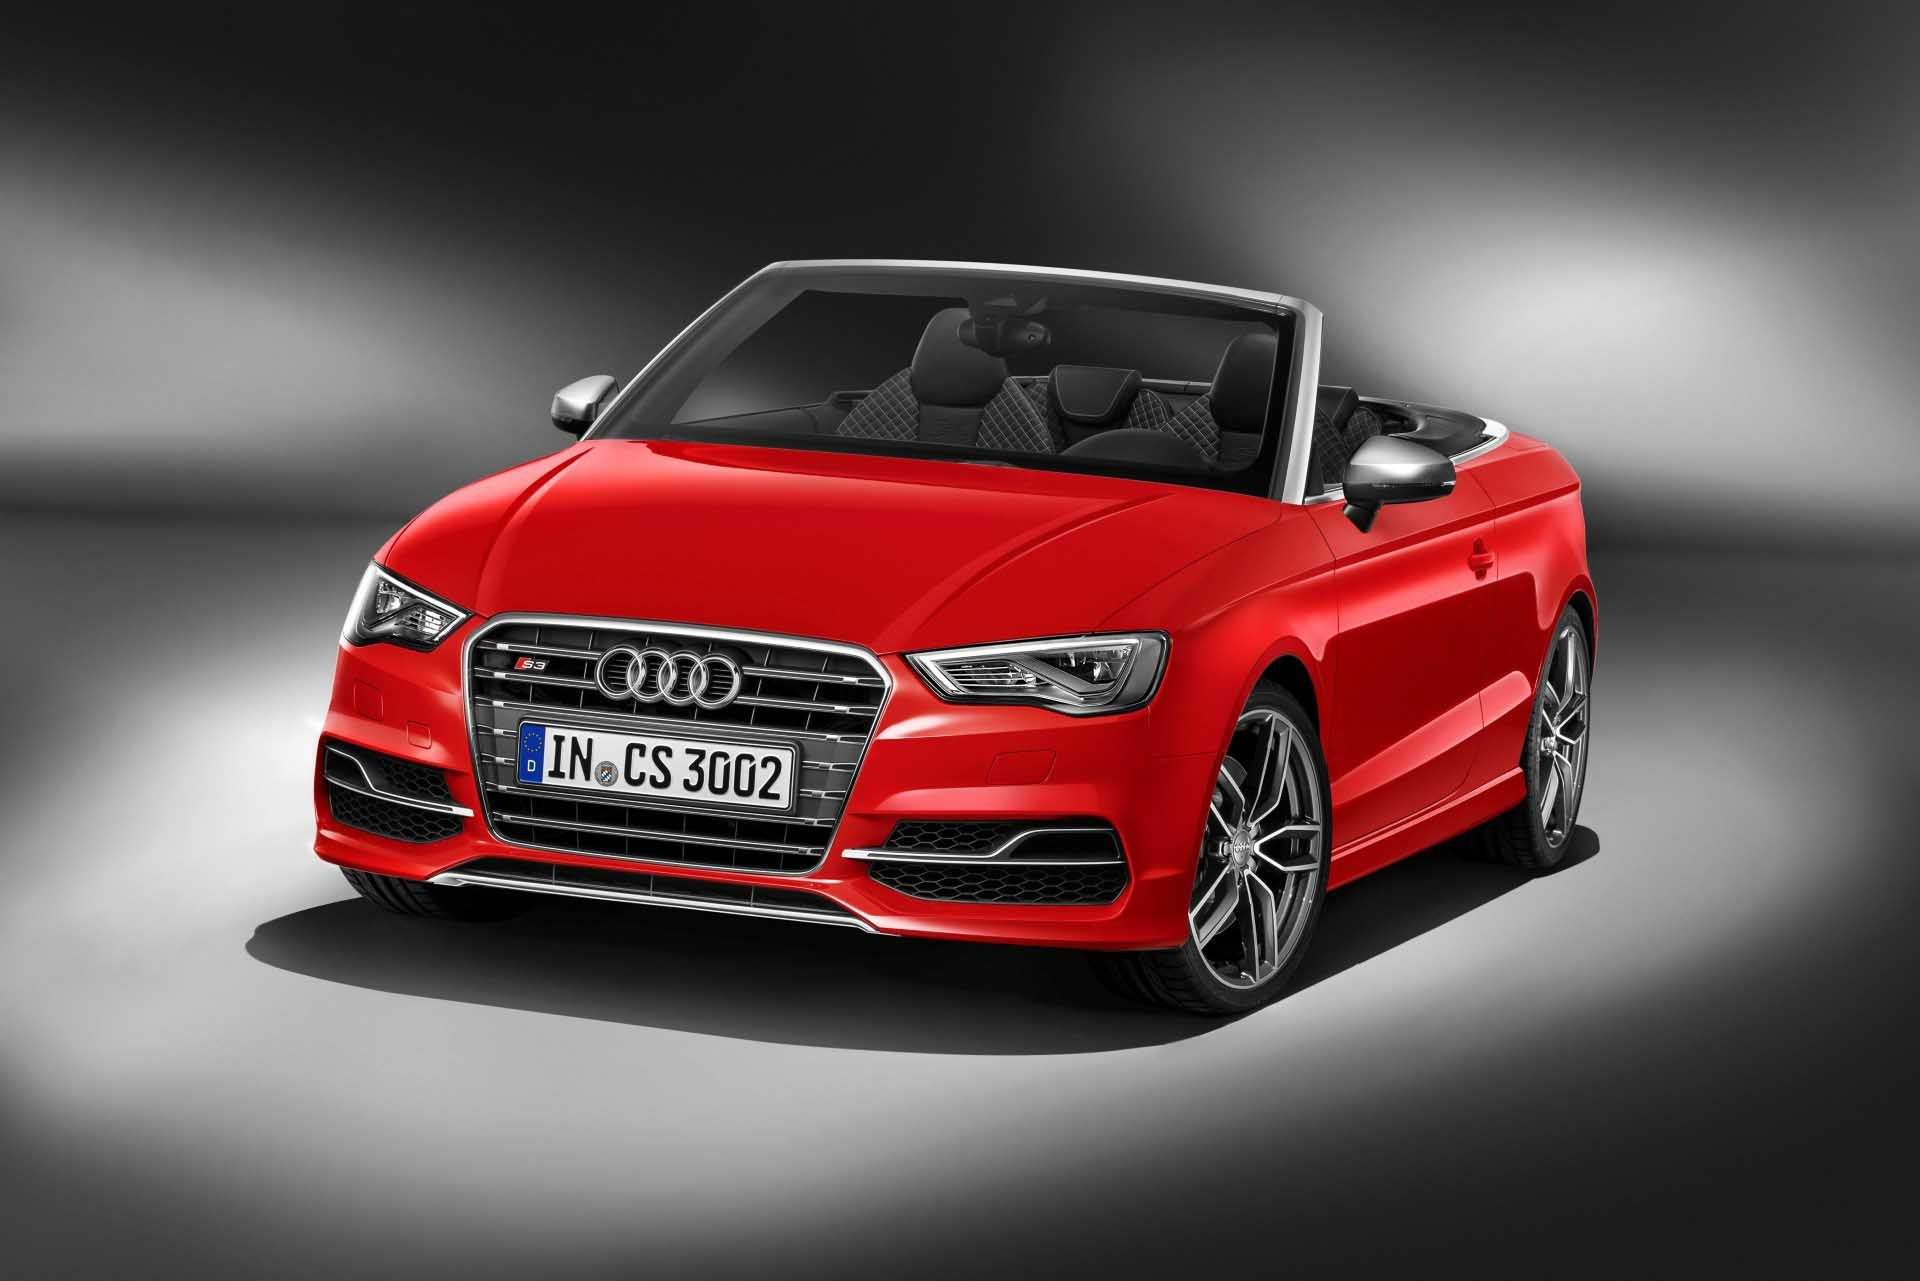 10 cool audi s3 cabriolet cinematic front view phone wallpaper